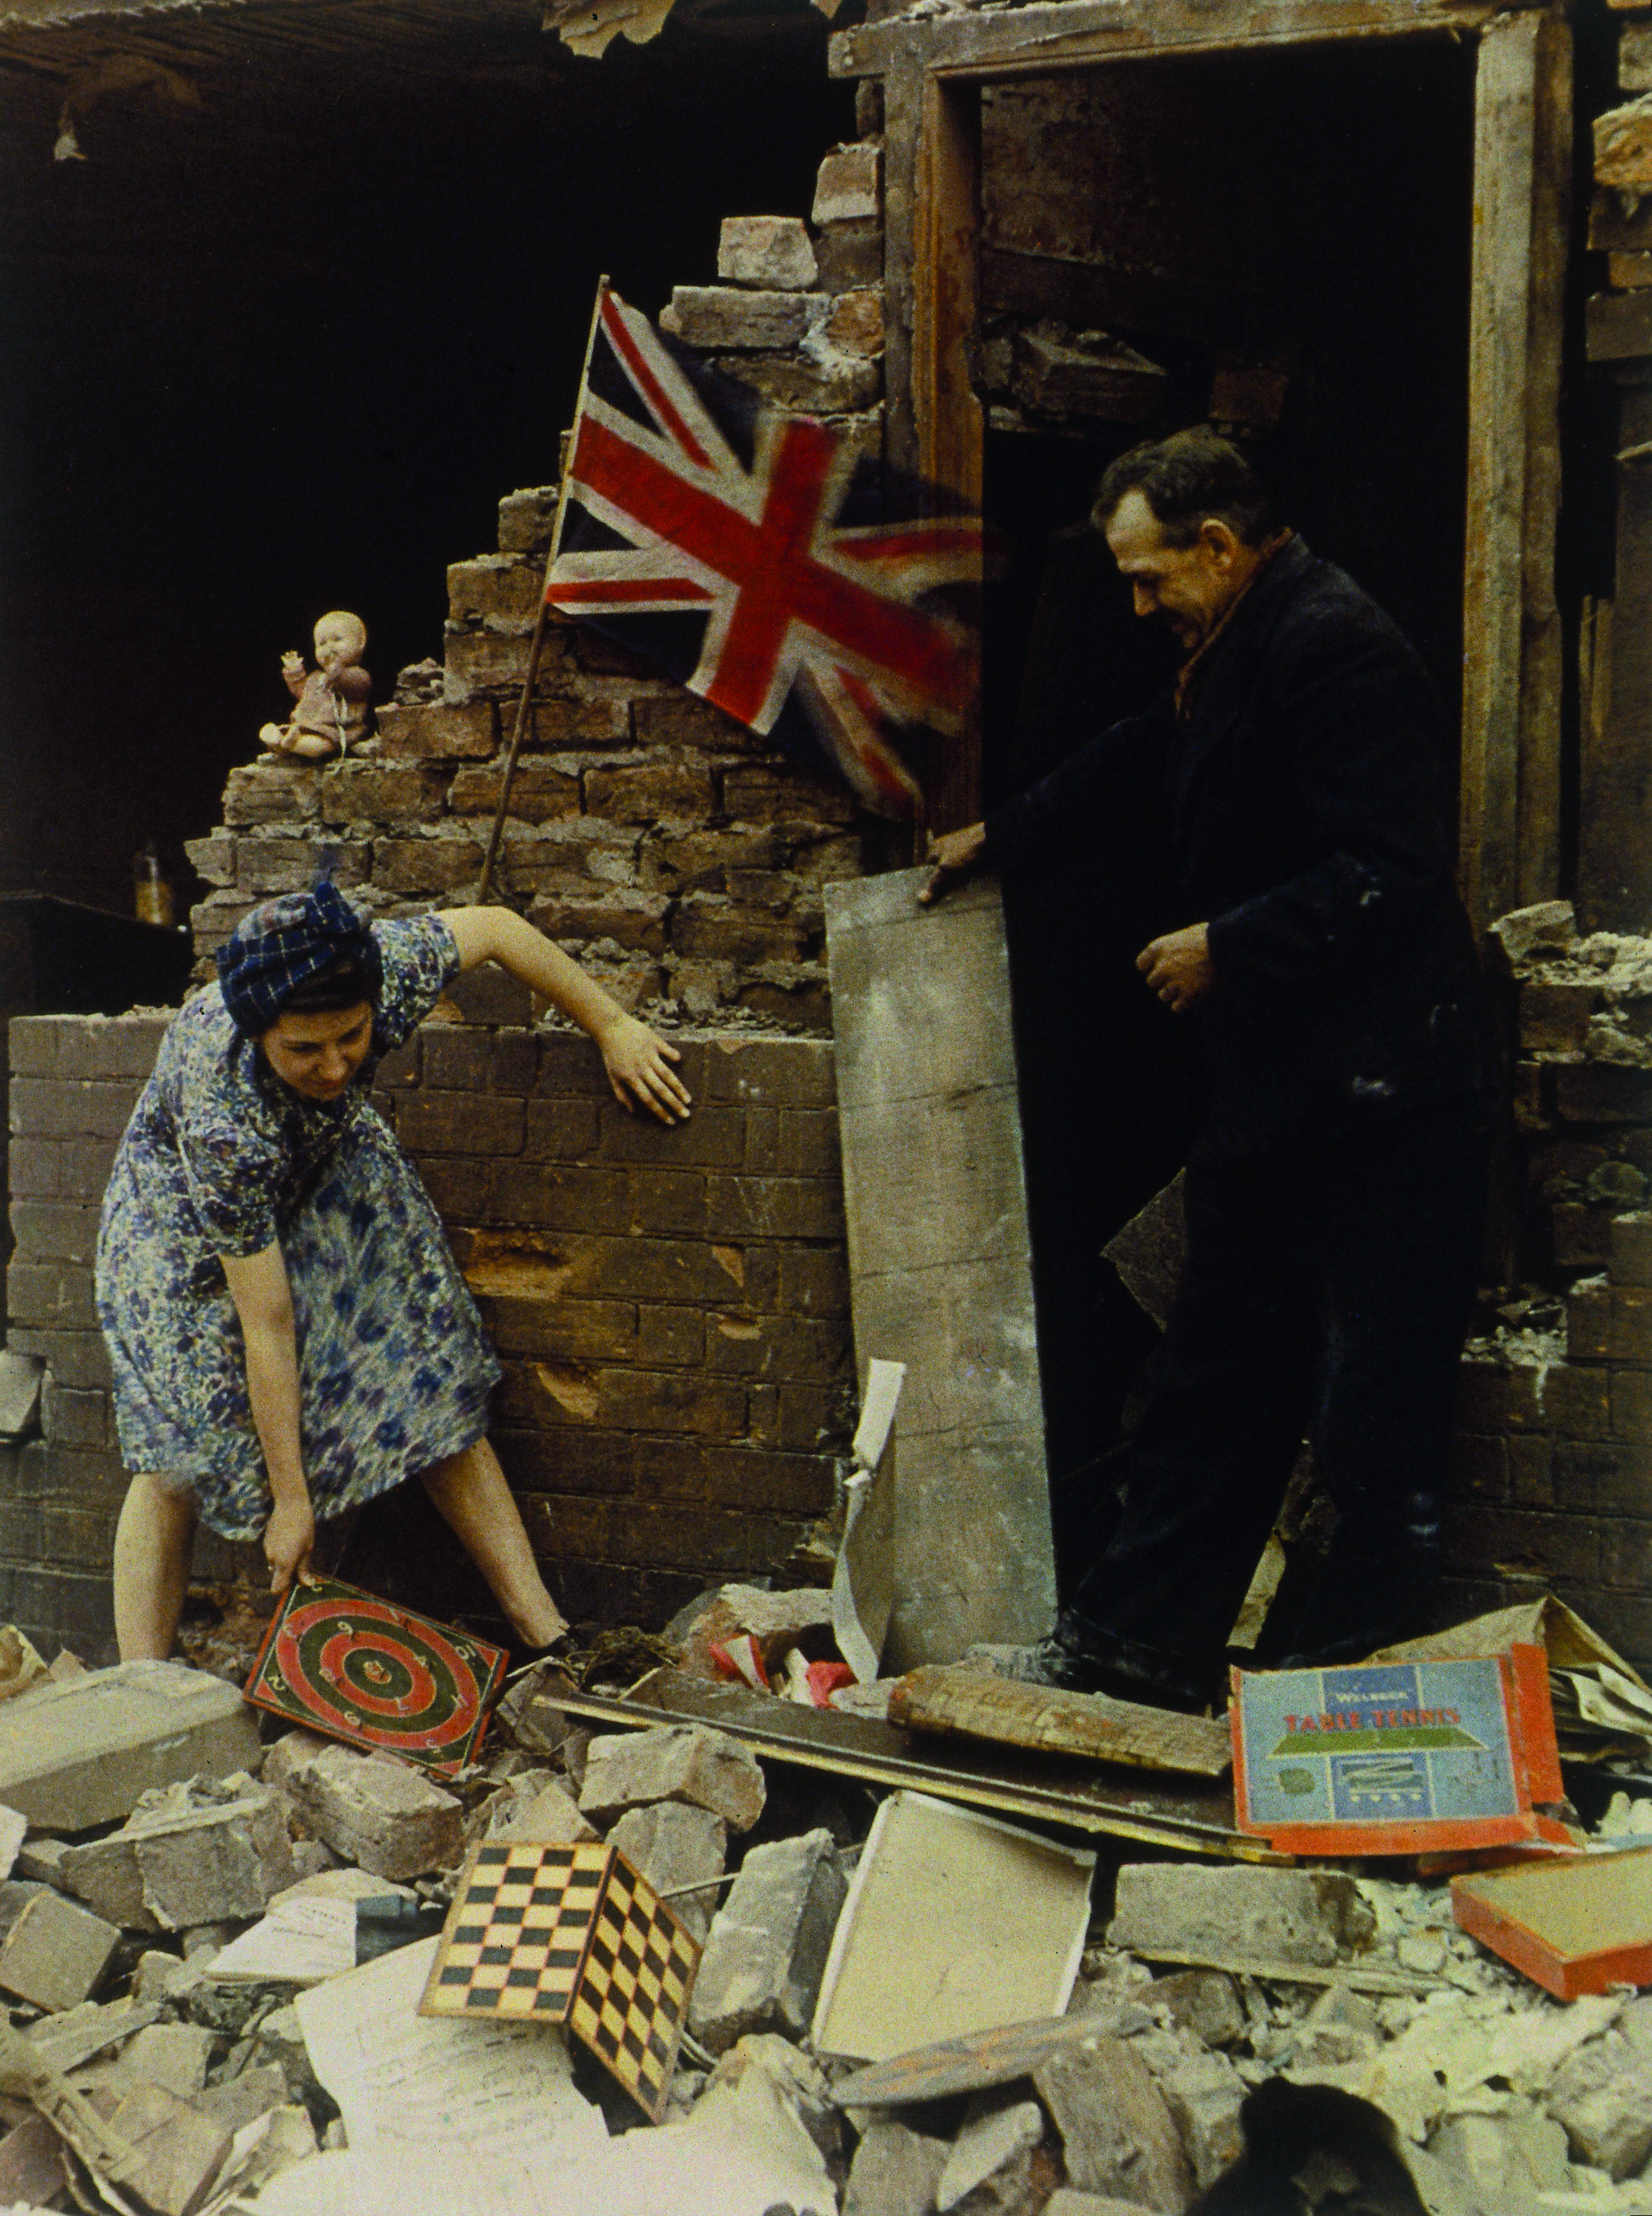 1939-1945. In what looks like a staged morale boosting image, a woman saves a board game from the bomb wreckage.